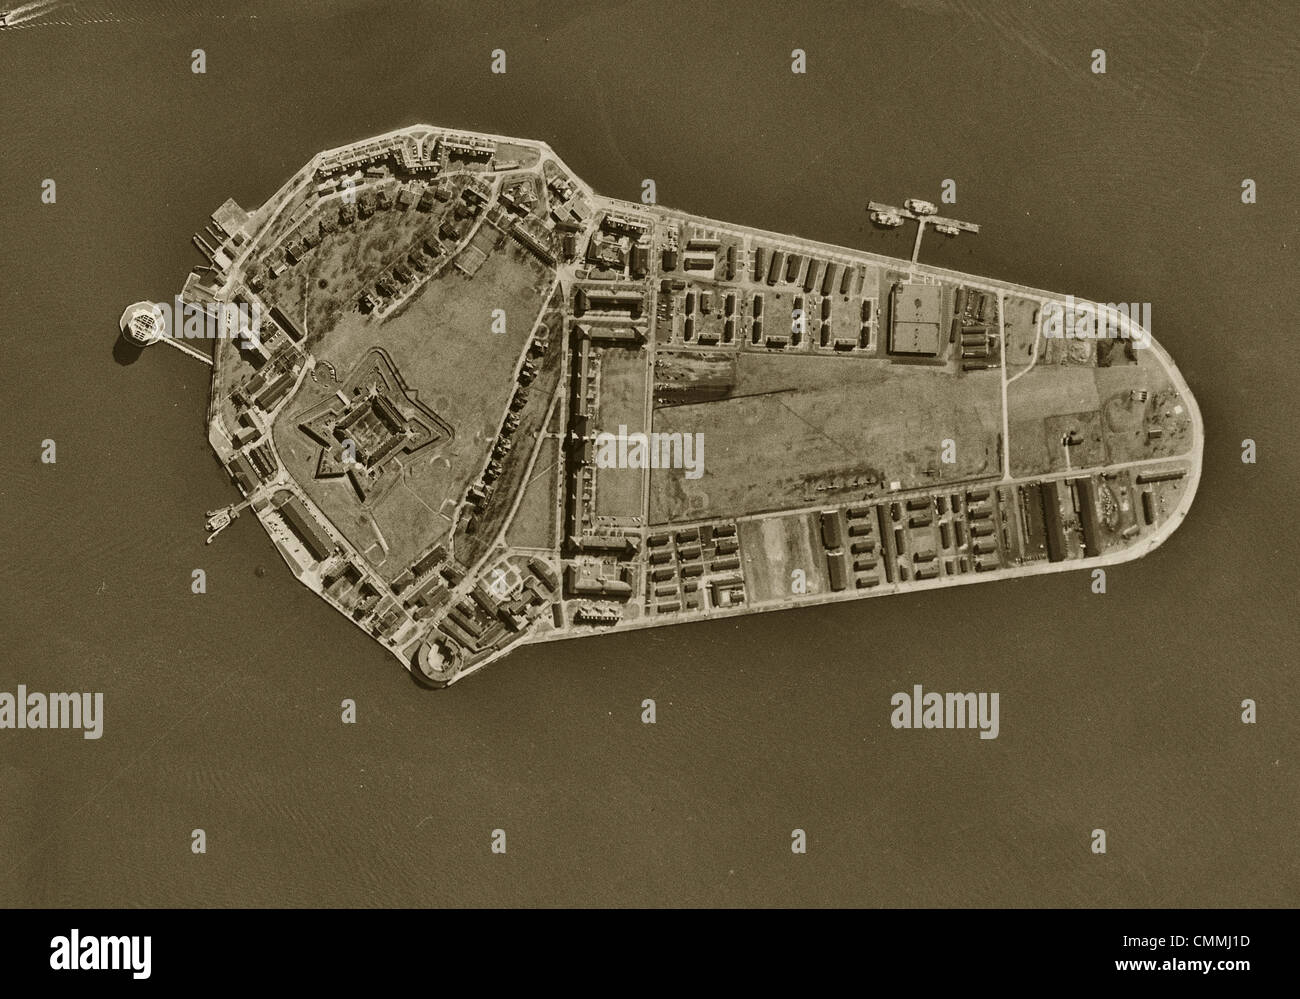 aerial photo map Governors Island, New York City, 1954 Stock Photo on